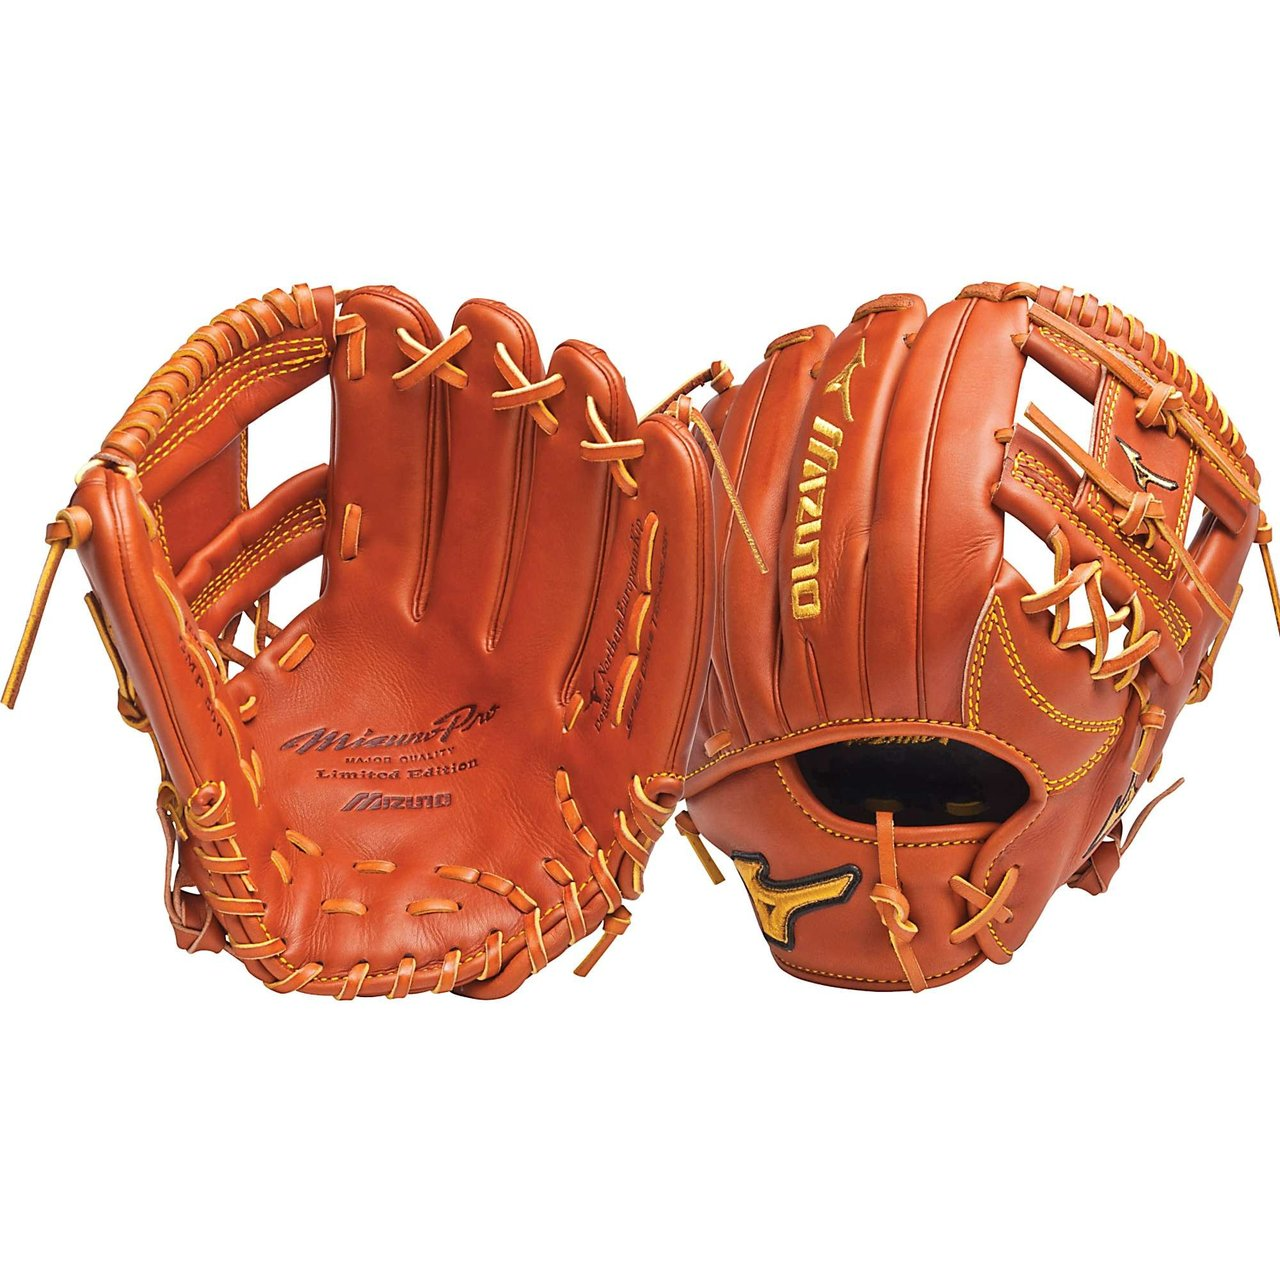 mizuno-pro-gmp500-limited-edition-11-75-baseball-glove-right-handed-throw GMP500-Right Handed Throw Mizuno 041969366783 Mizuno Pro Limited Baseball Glove provides a top quality baseball glove.